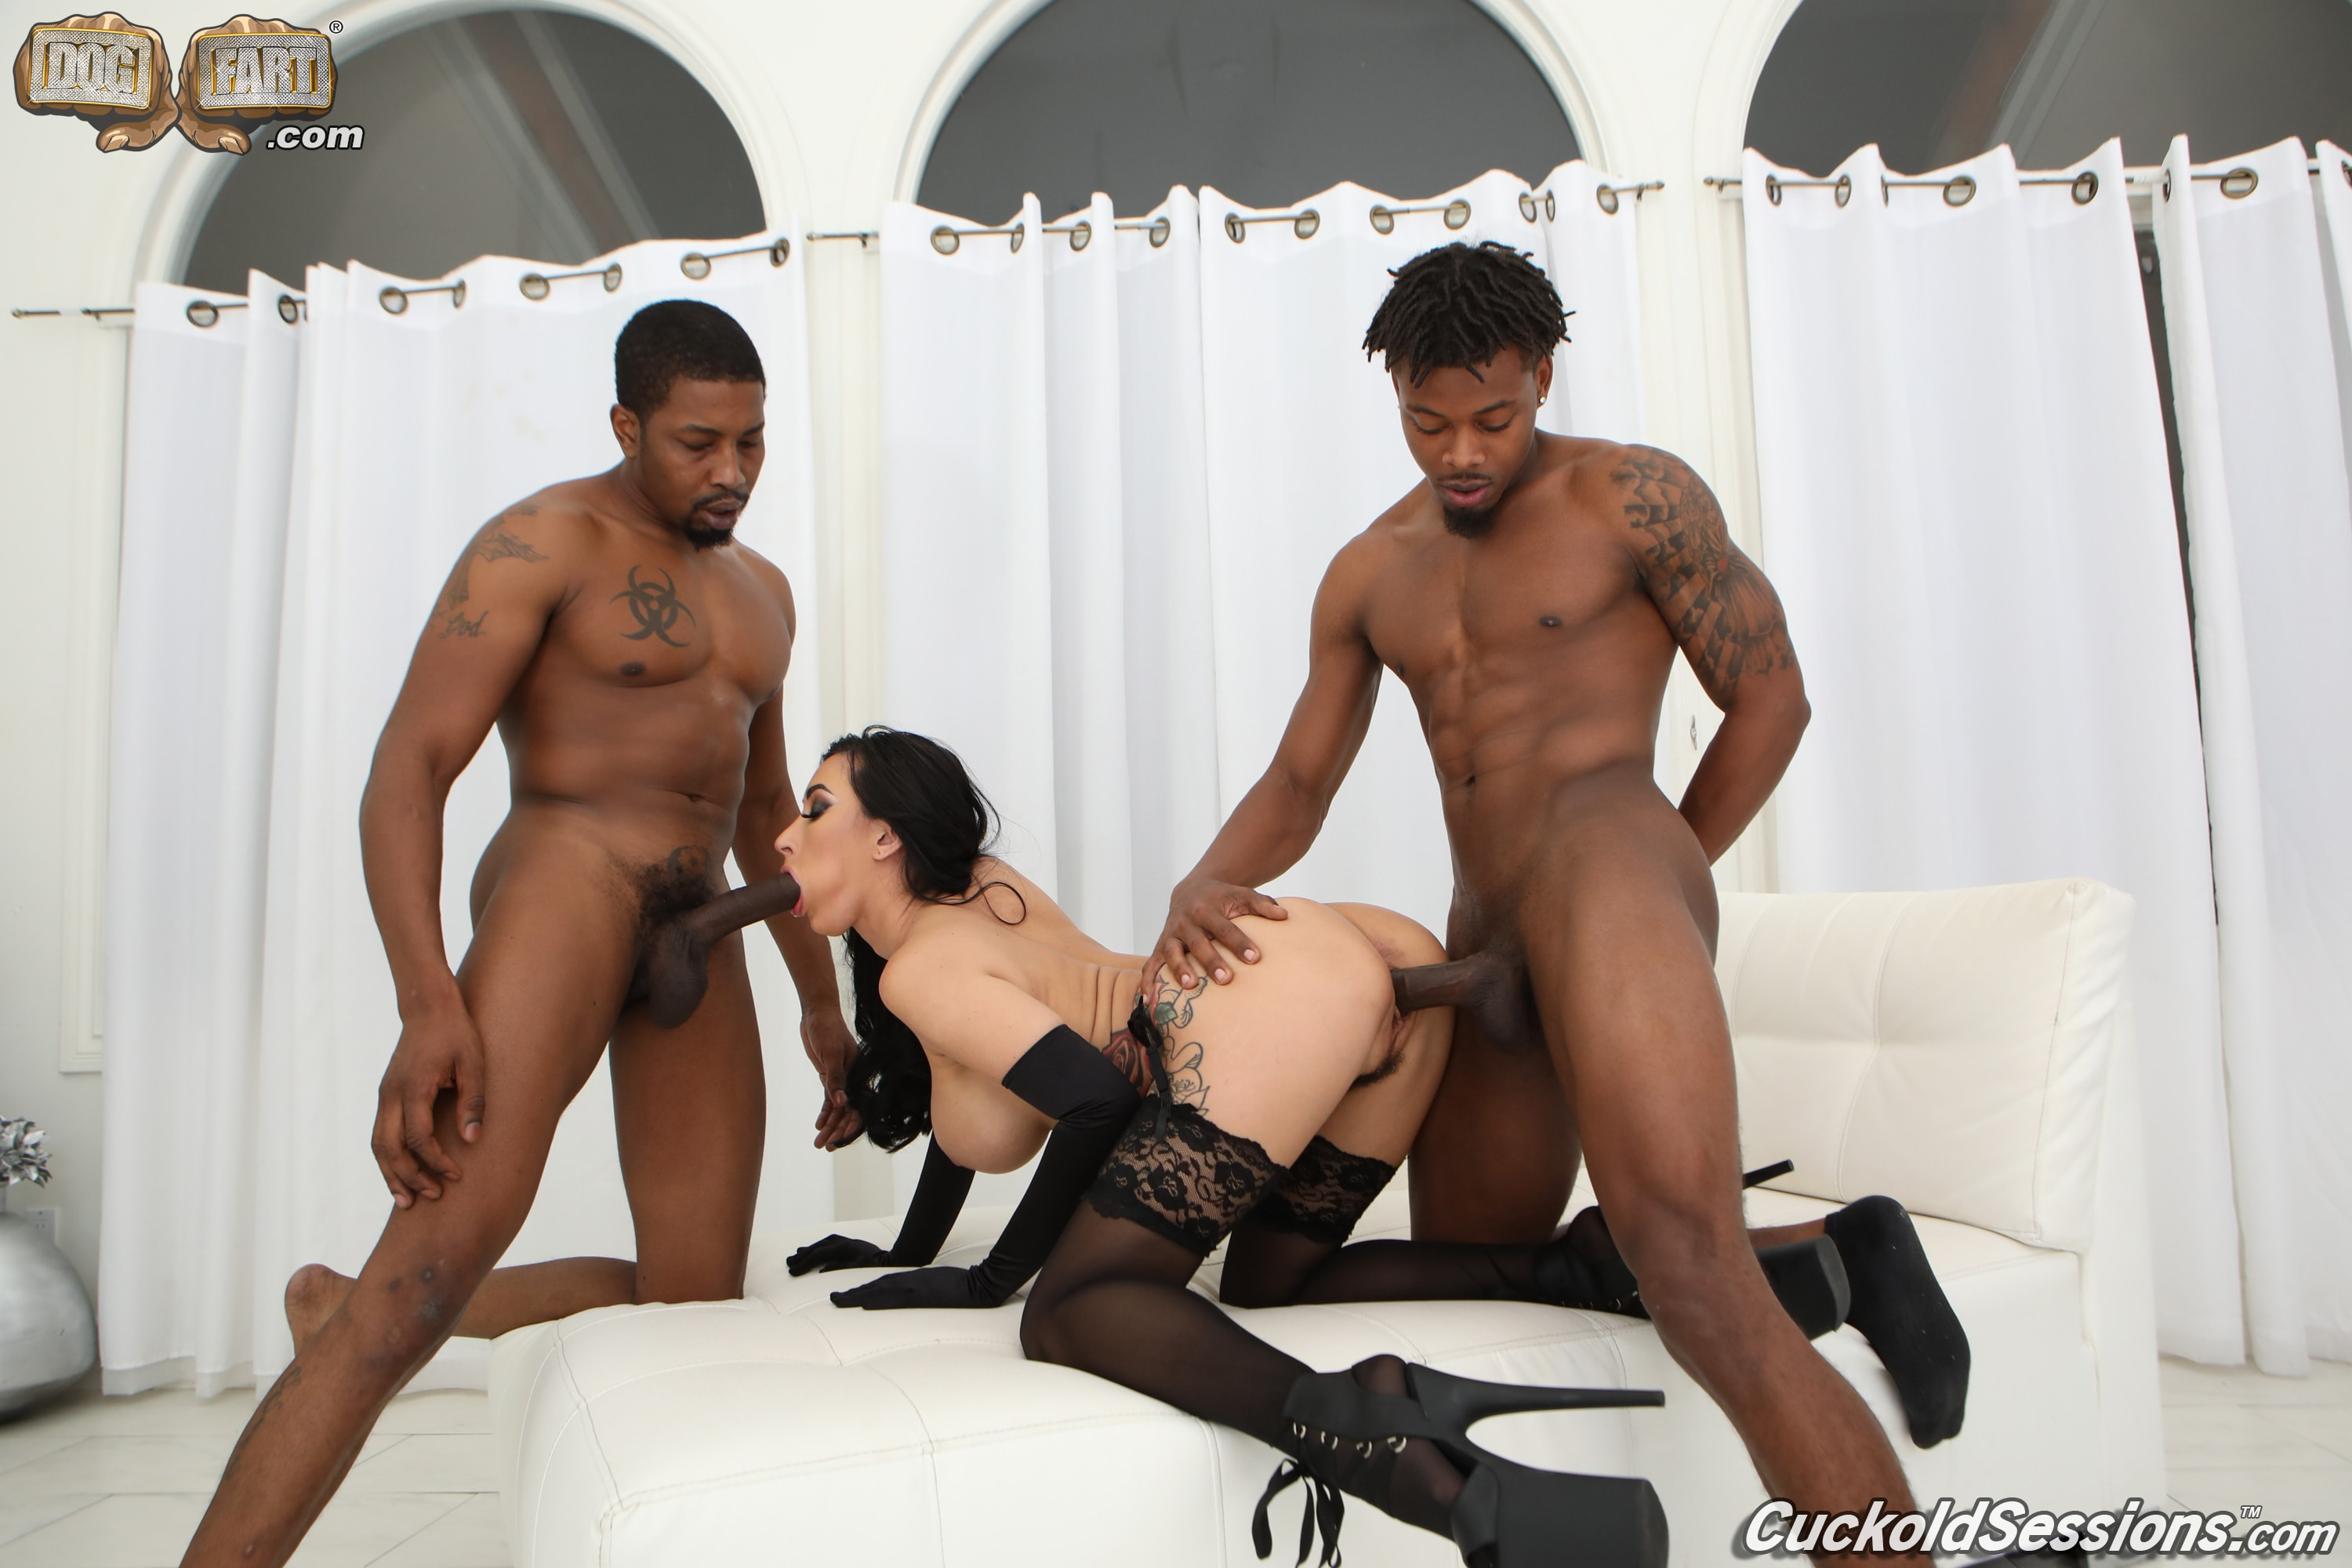 Dogfart '- Cuckold Sessions' starring Lily Lane (Photo 16)